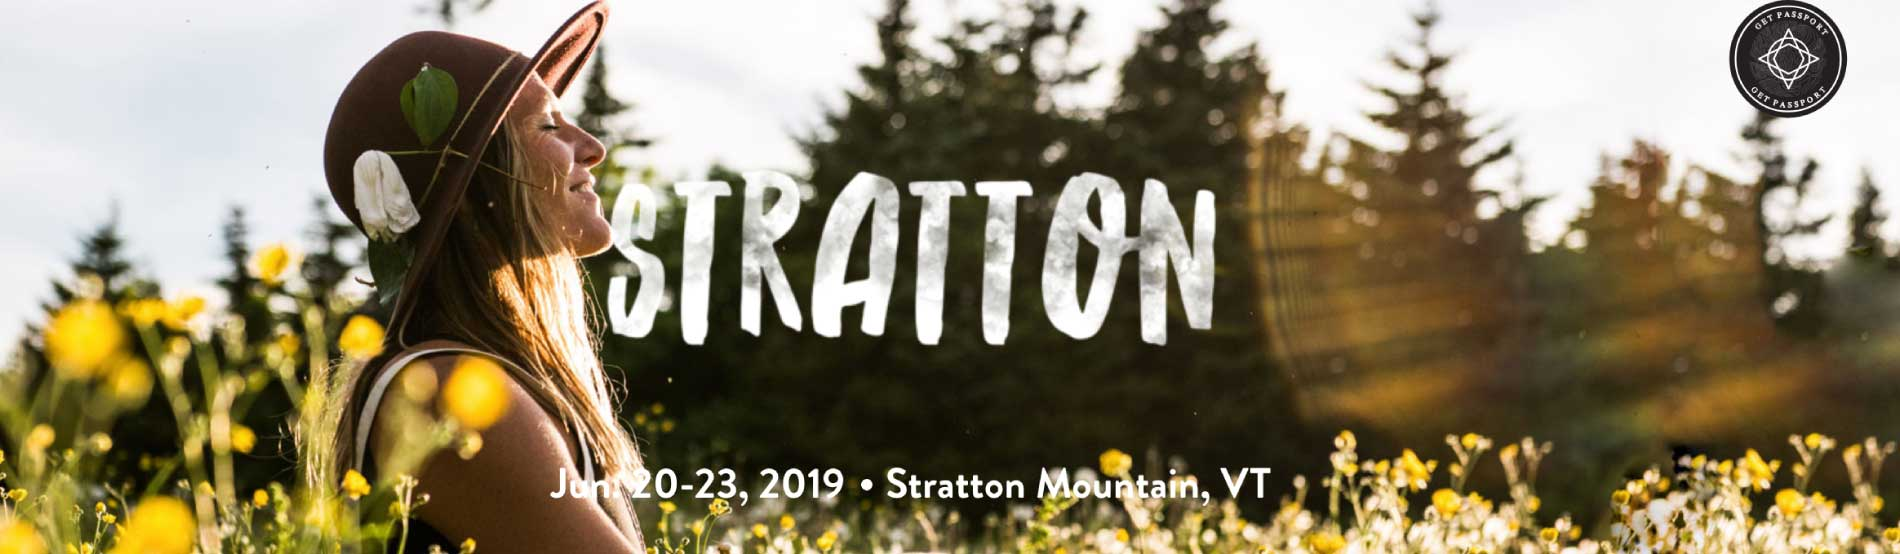 wanderlust festival at Stratton Mountain Vt